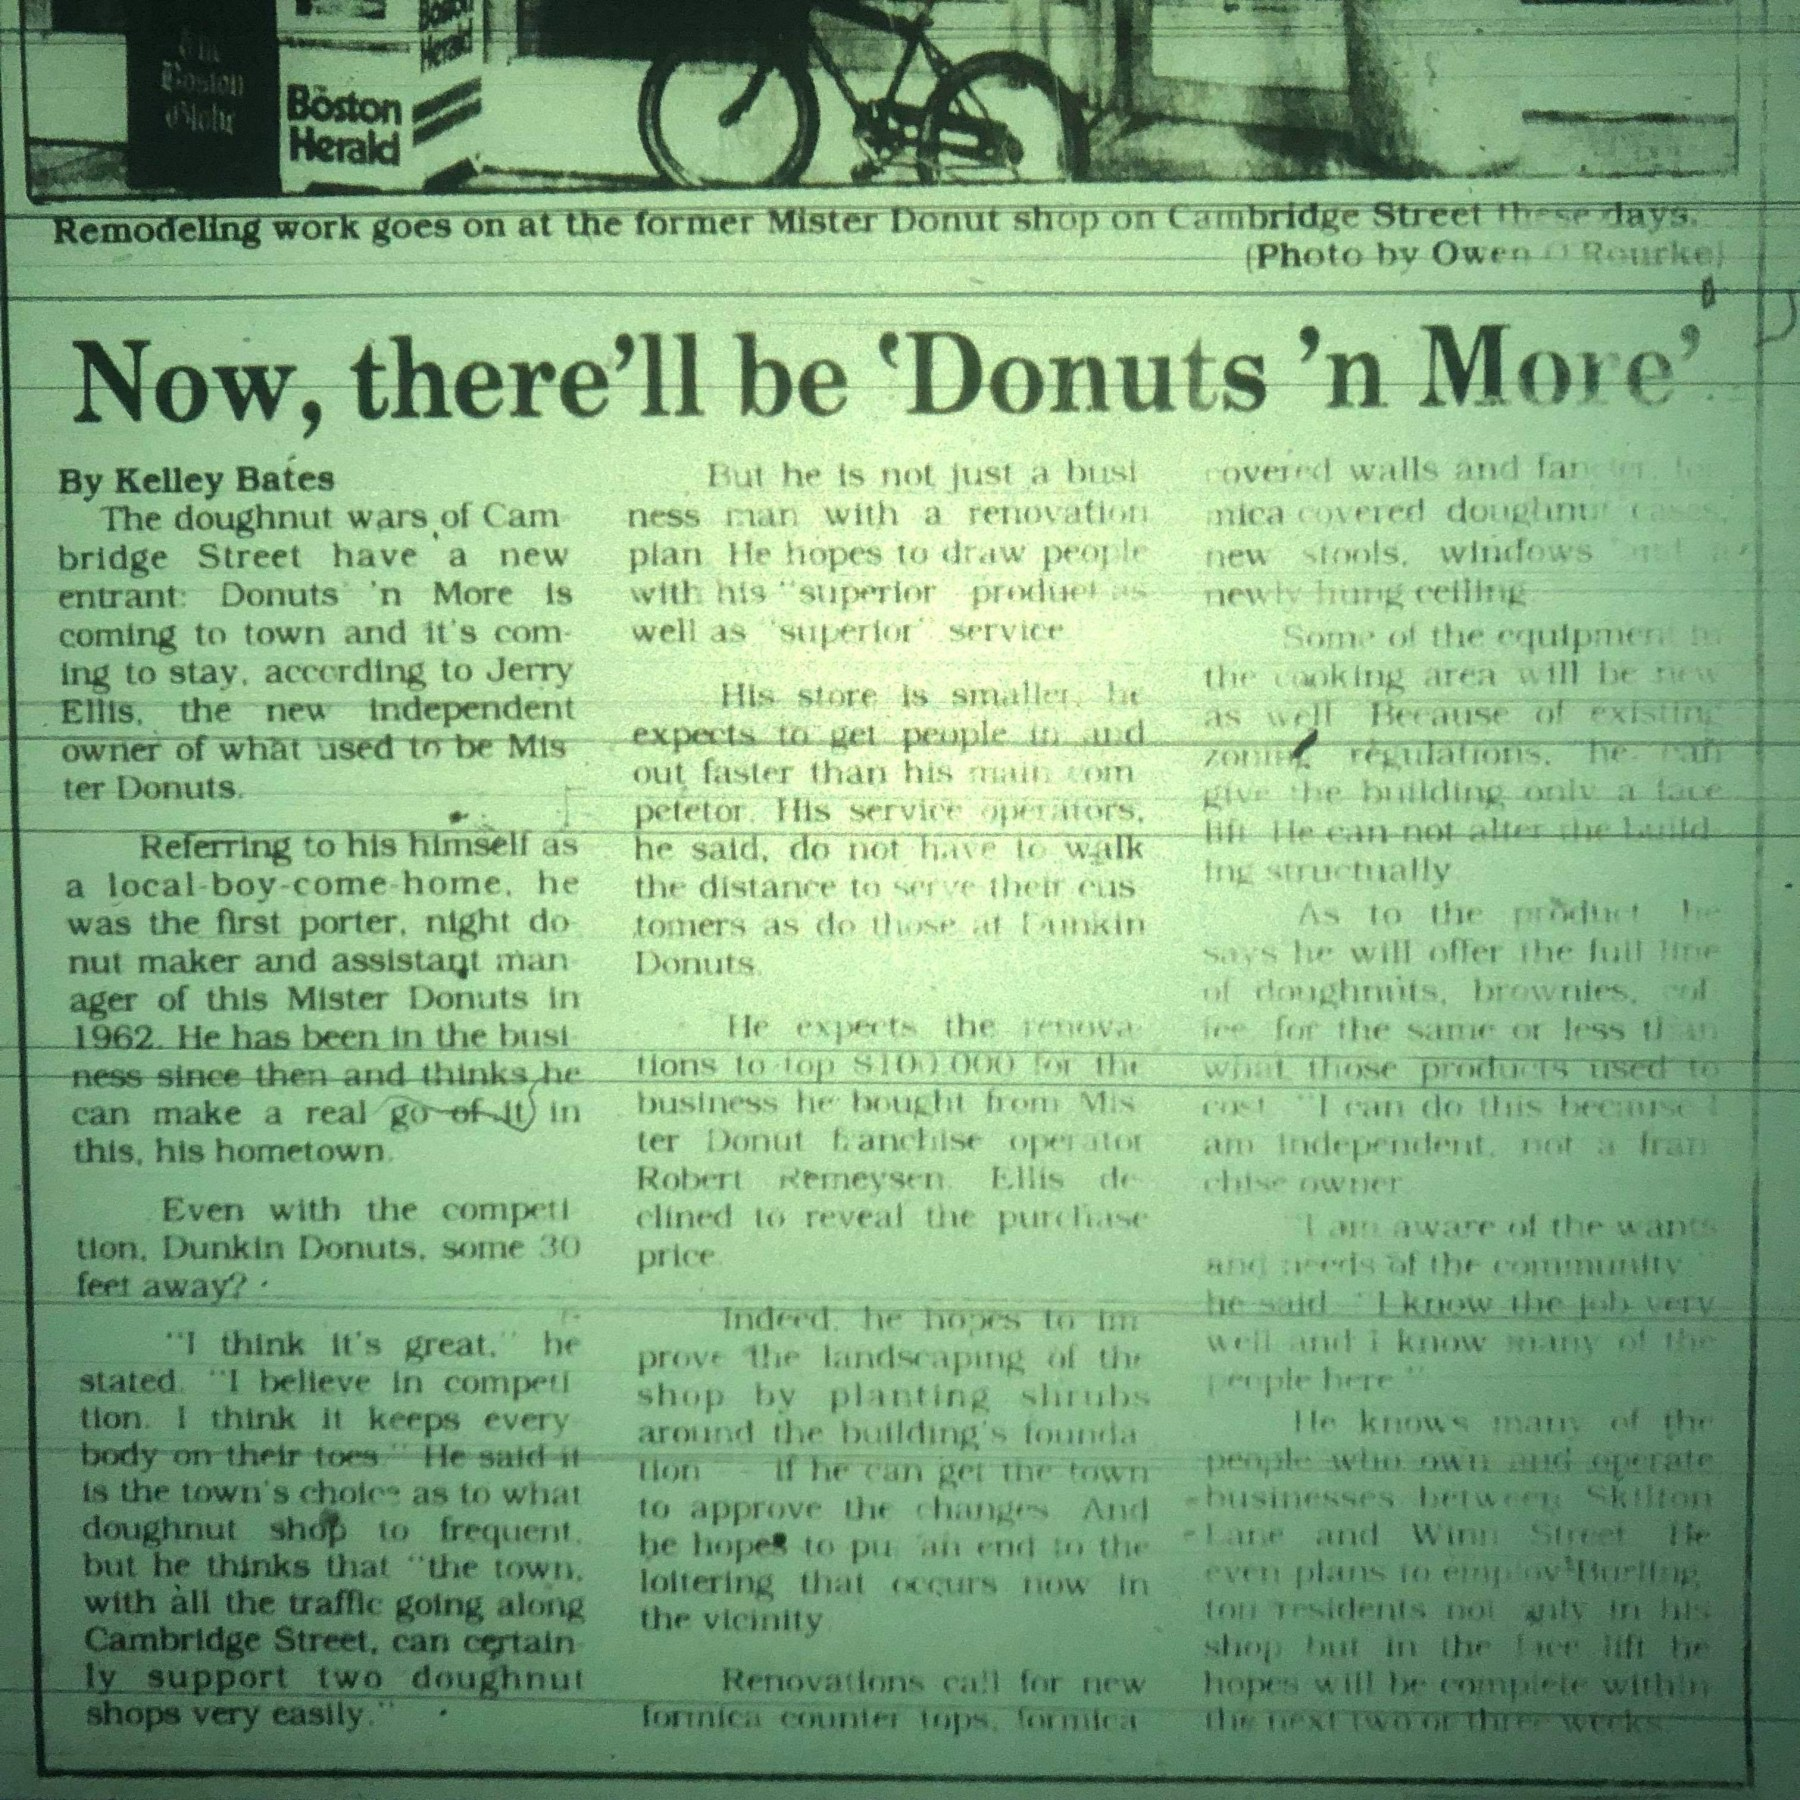 Mister Donut and Donuts 'n More article 1985